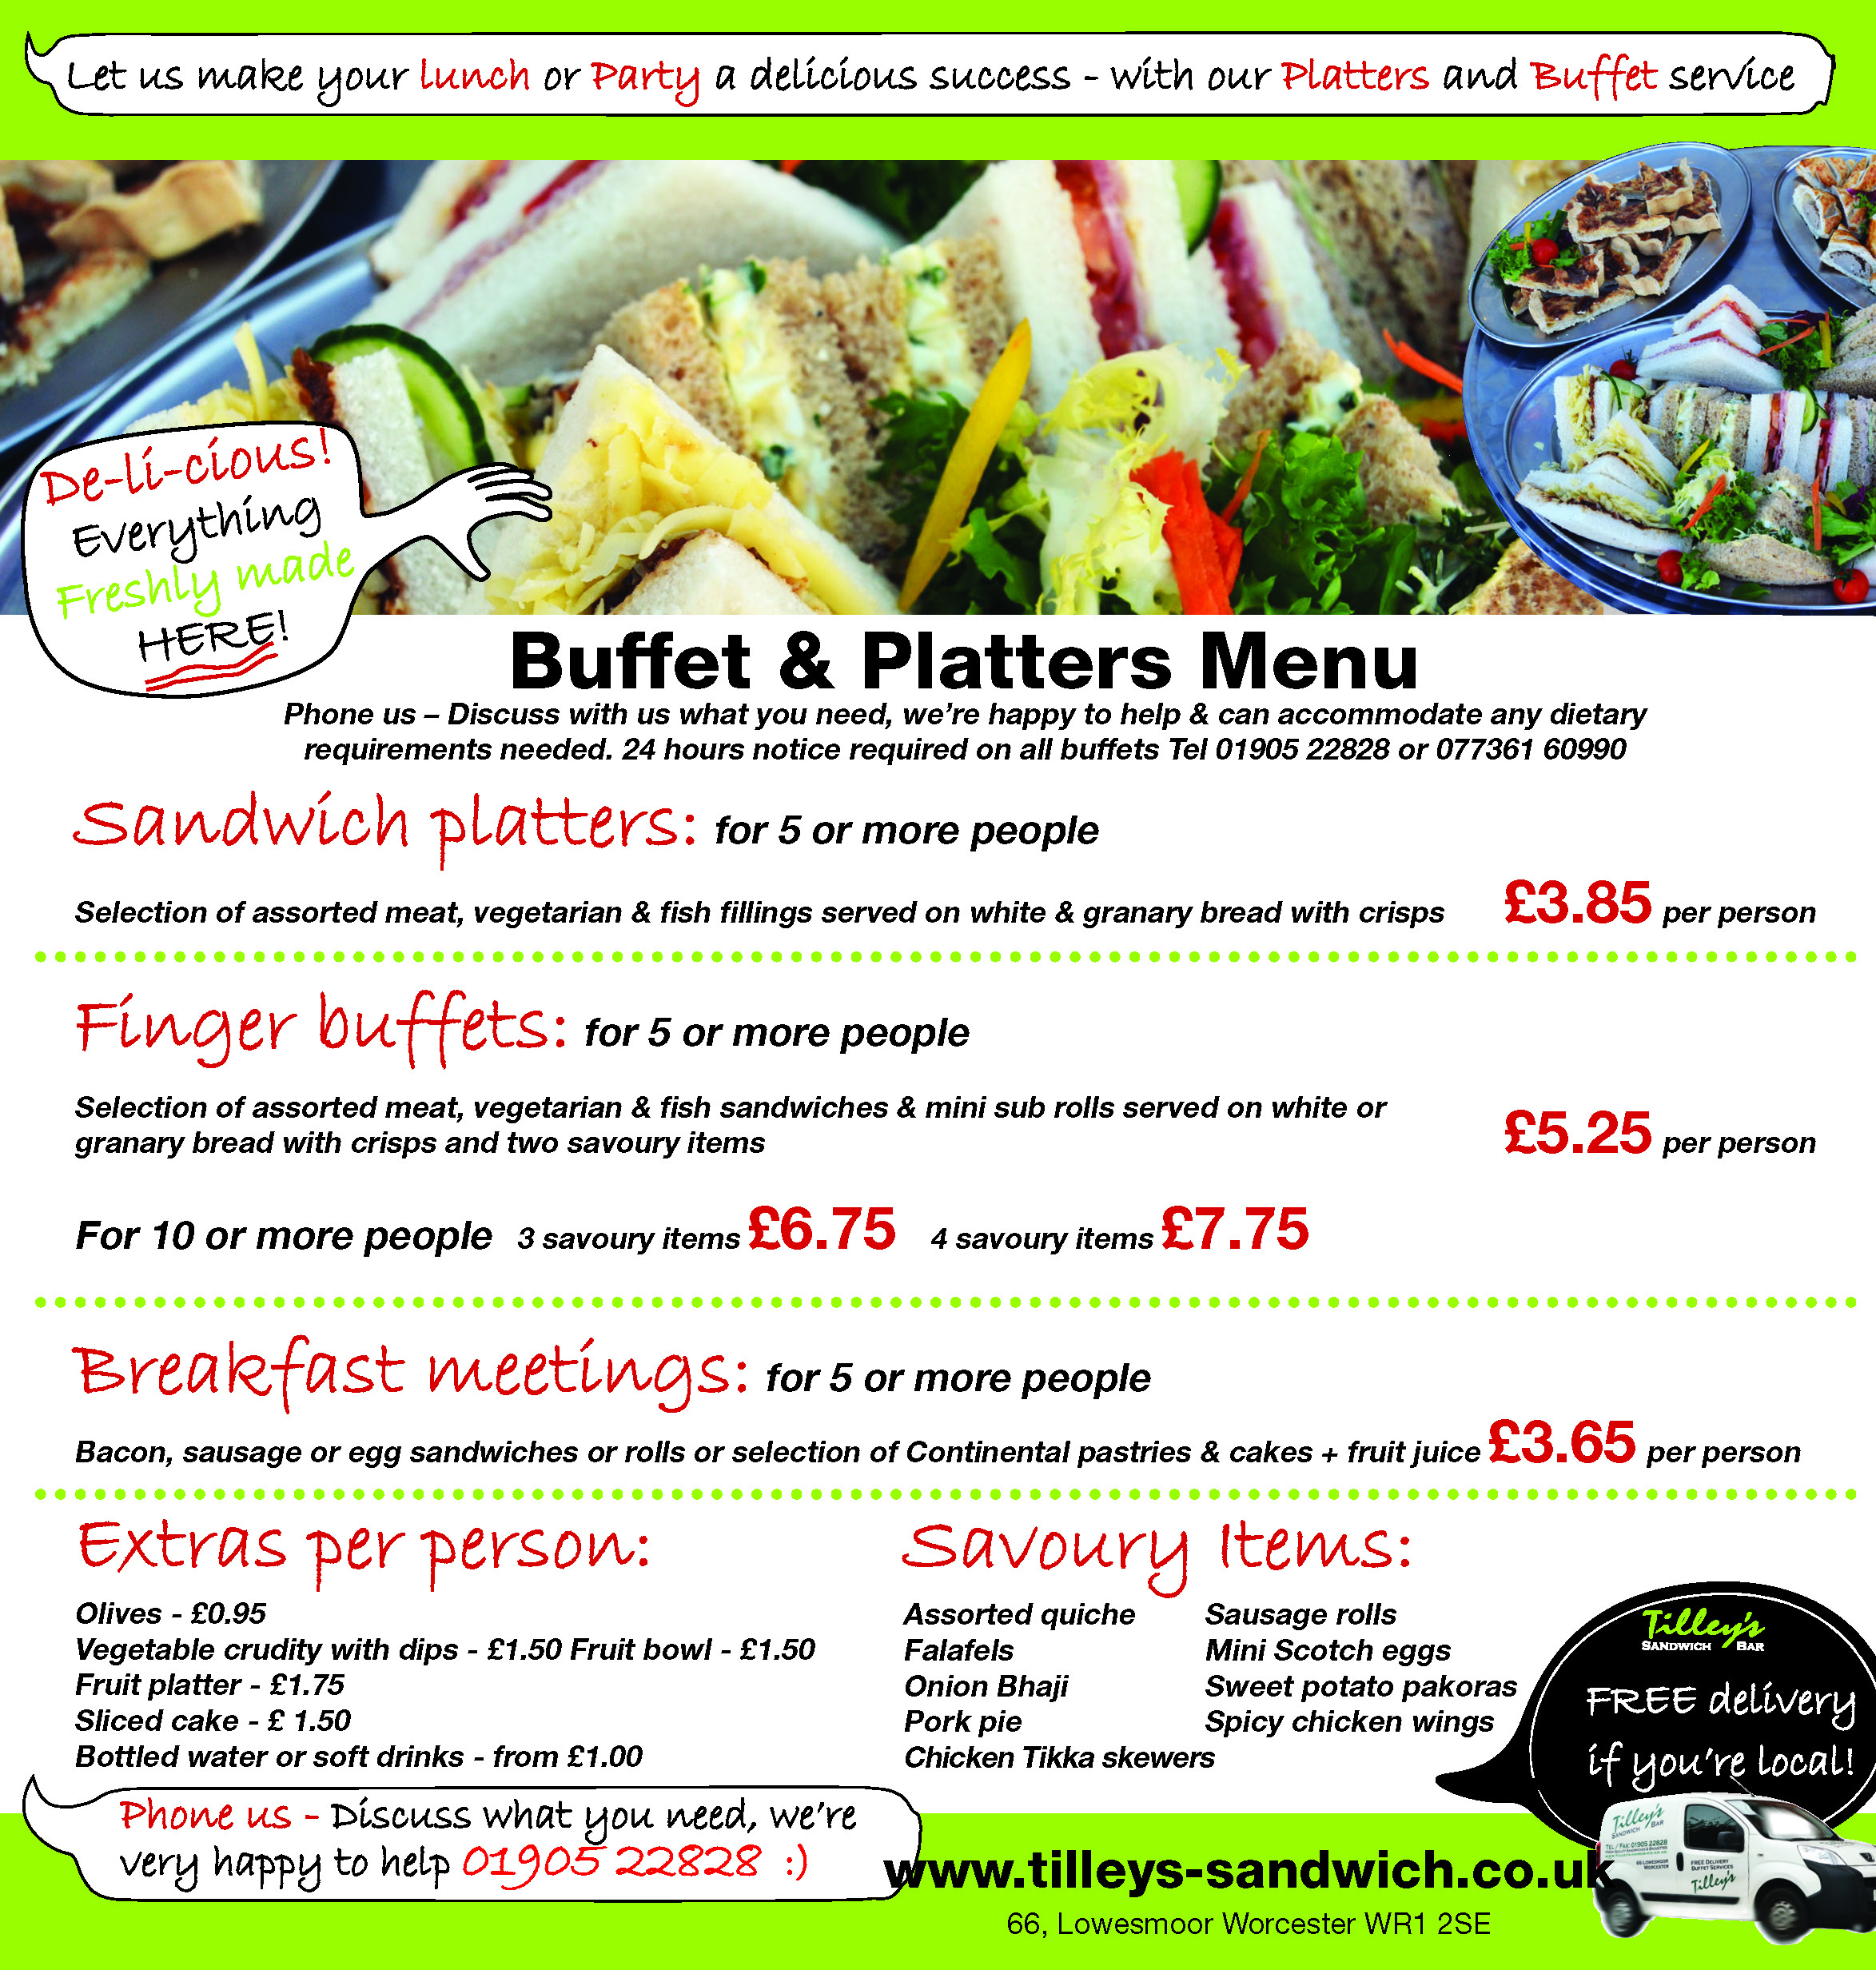 Buffets and Platters menu